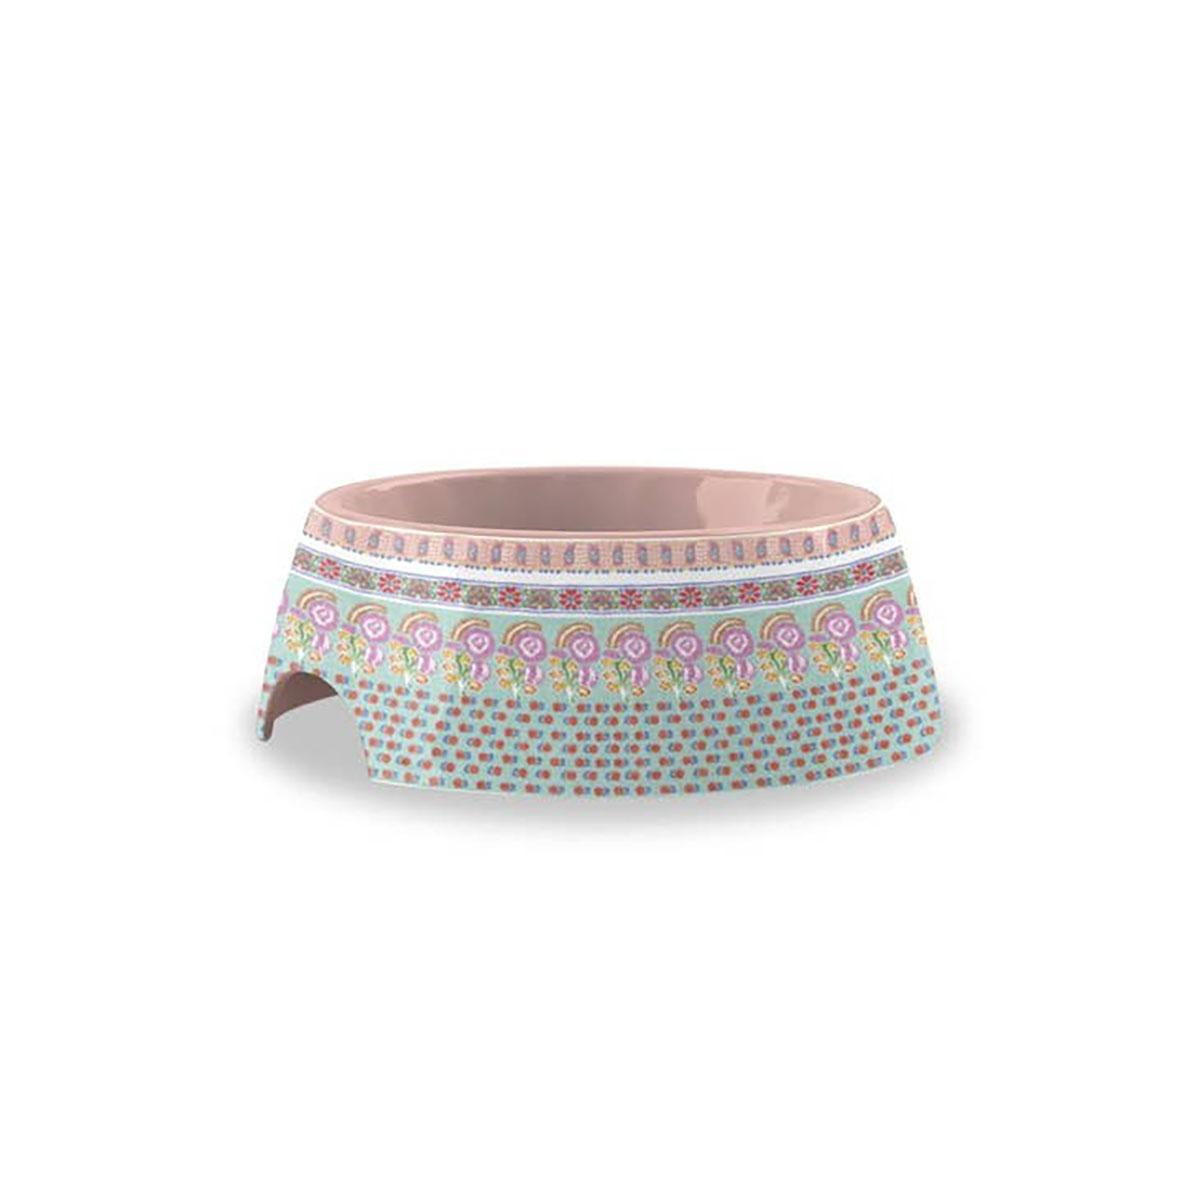 Flower Fields Extra Small Pet Bowl by TarHong - Pink